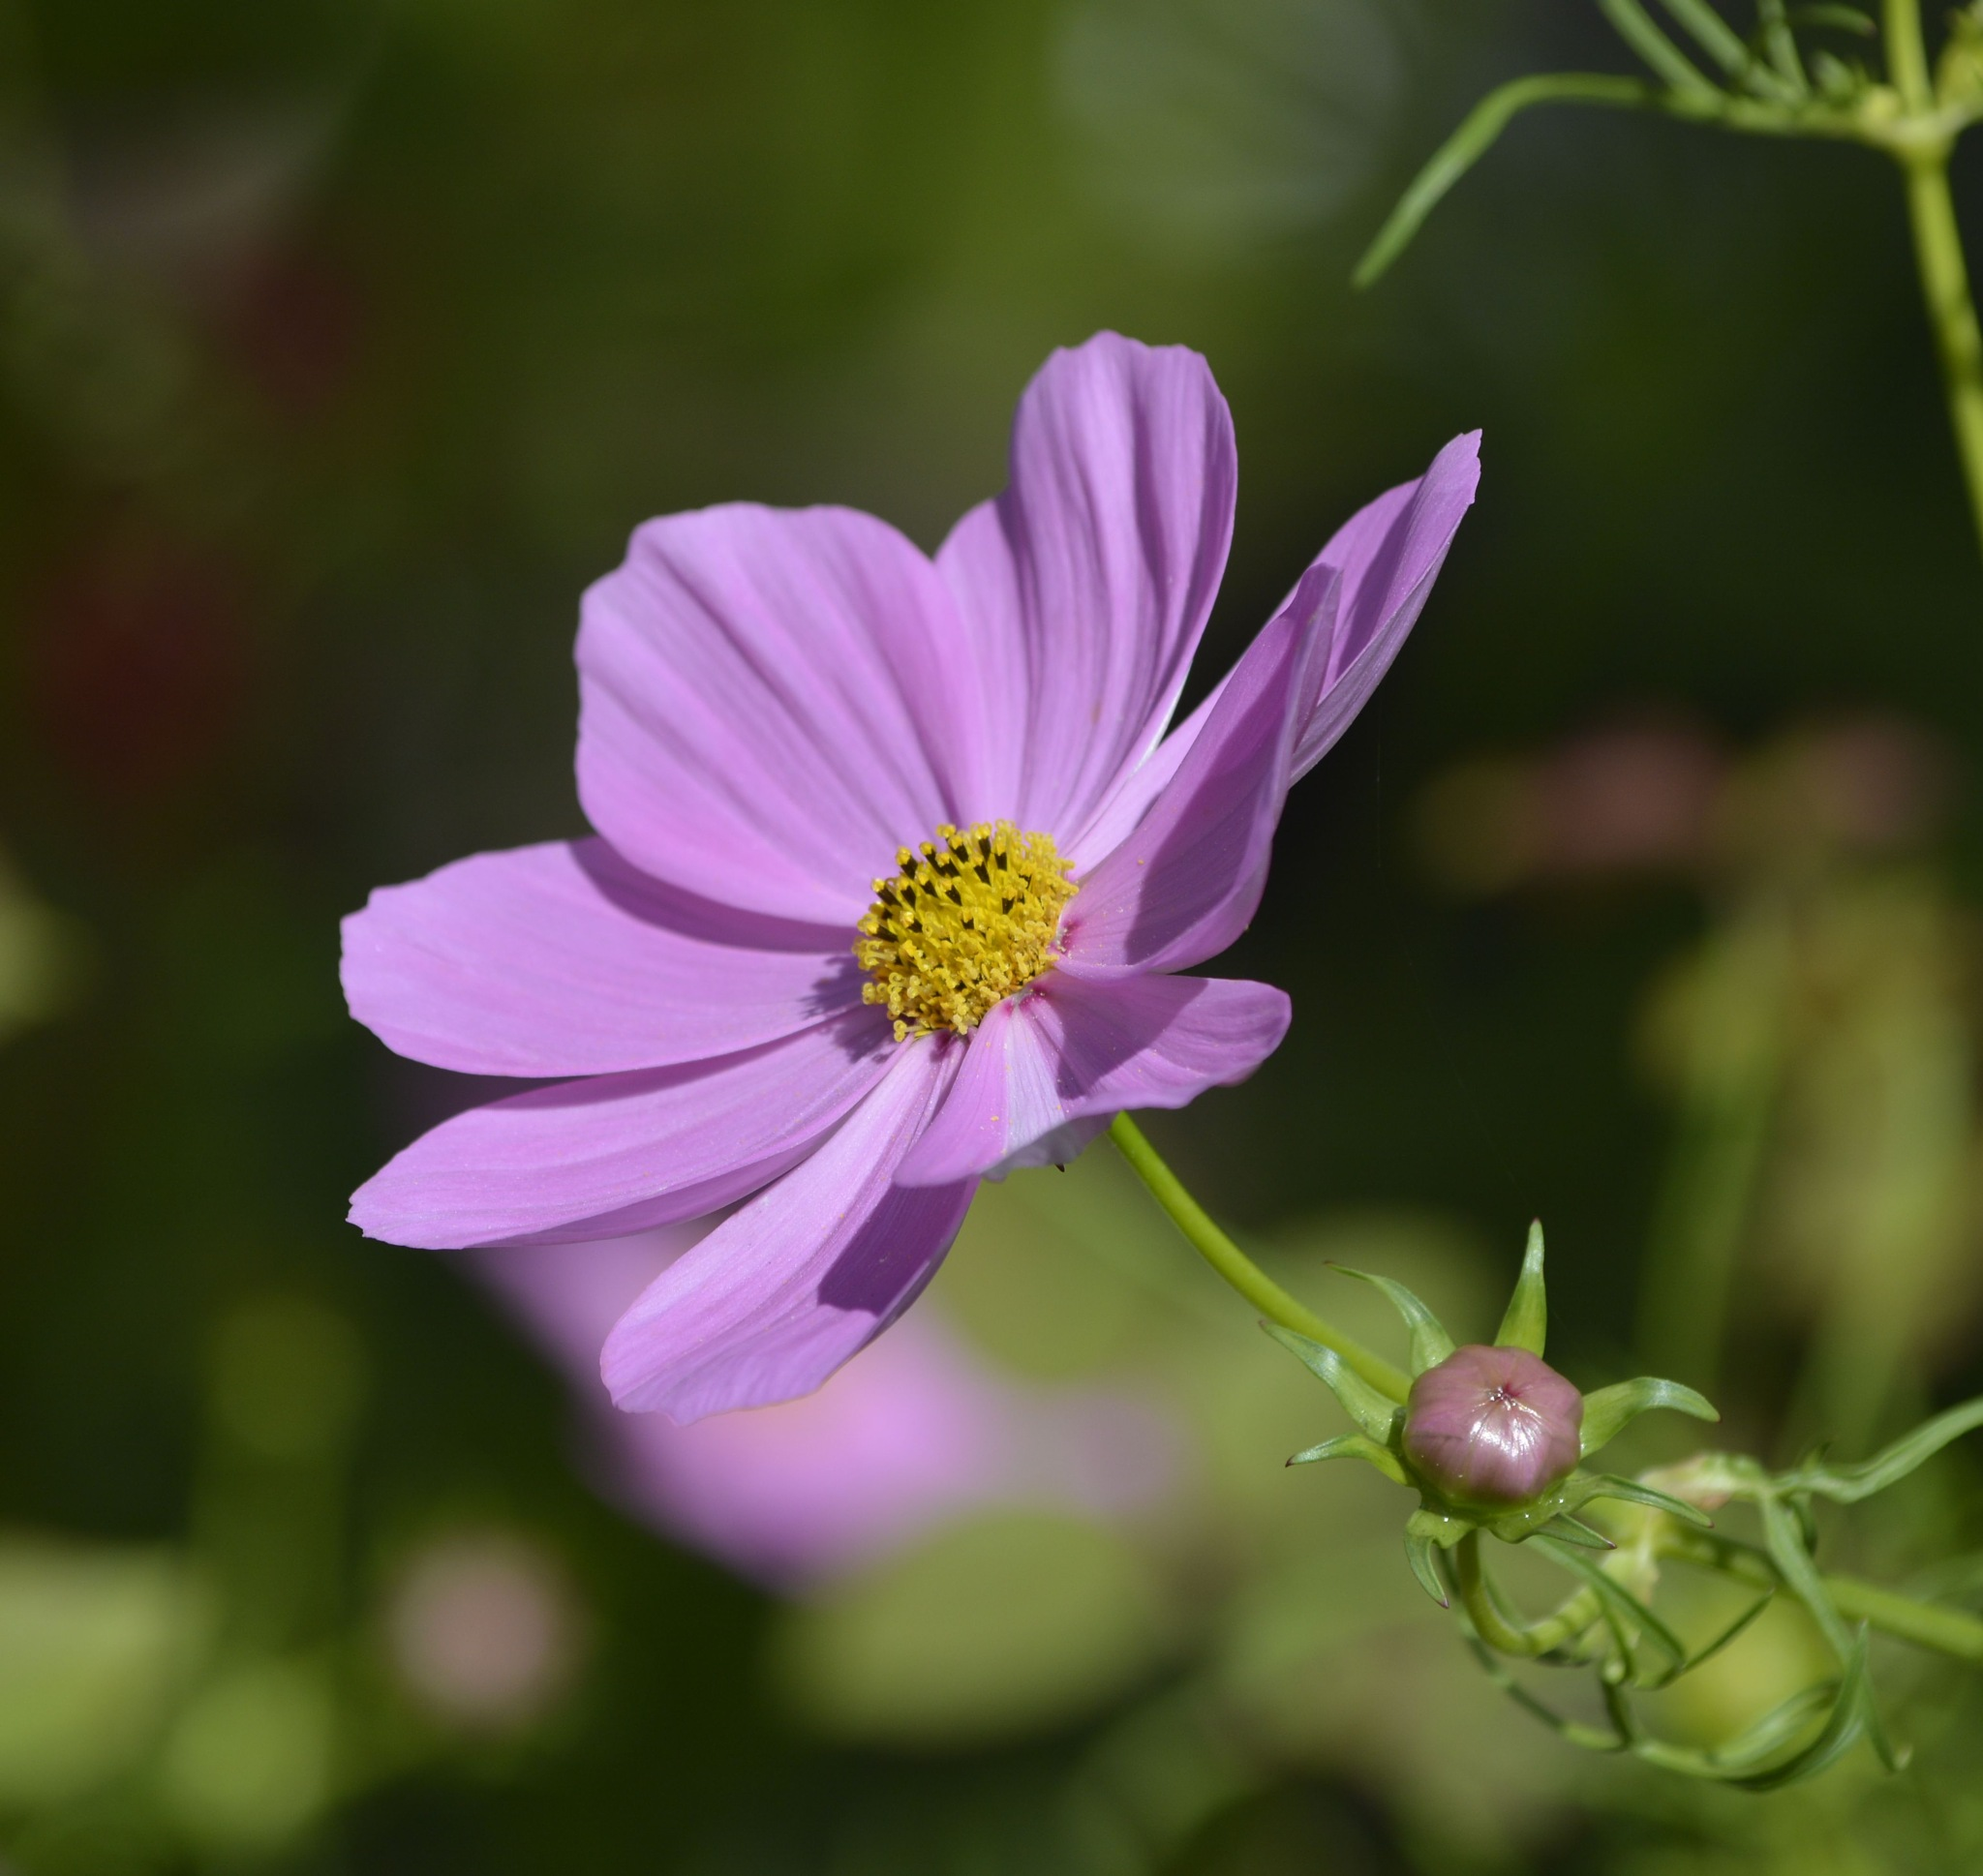 Lavender Flower by pscottwong